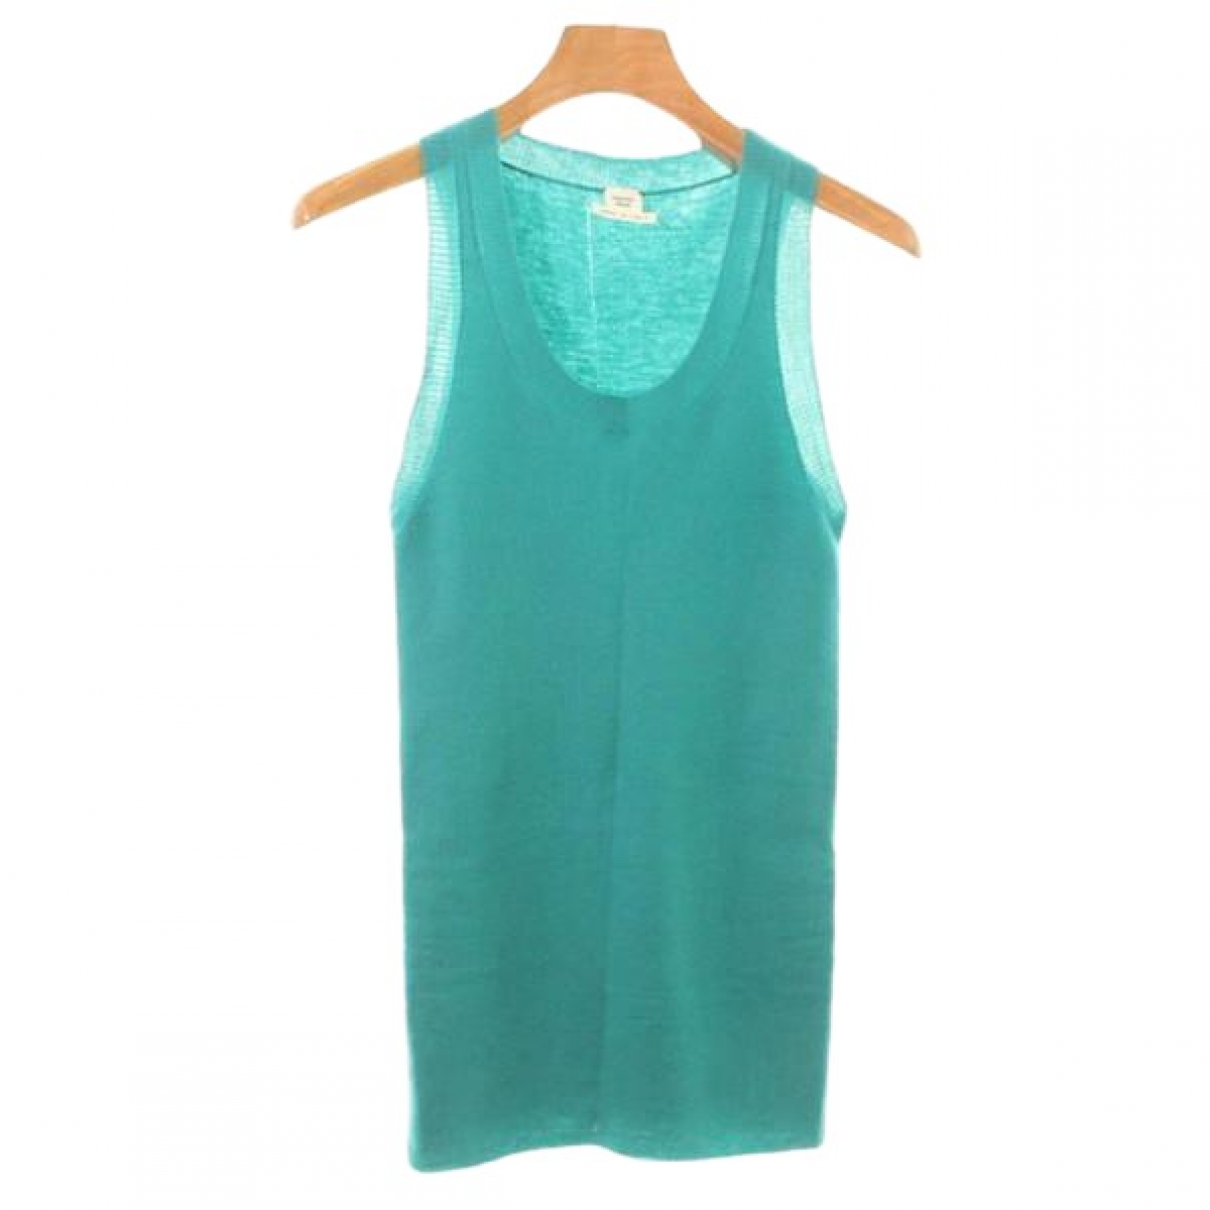 Hermès \N Turquoise Cashmere  top for Women 36 FR